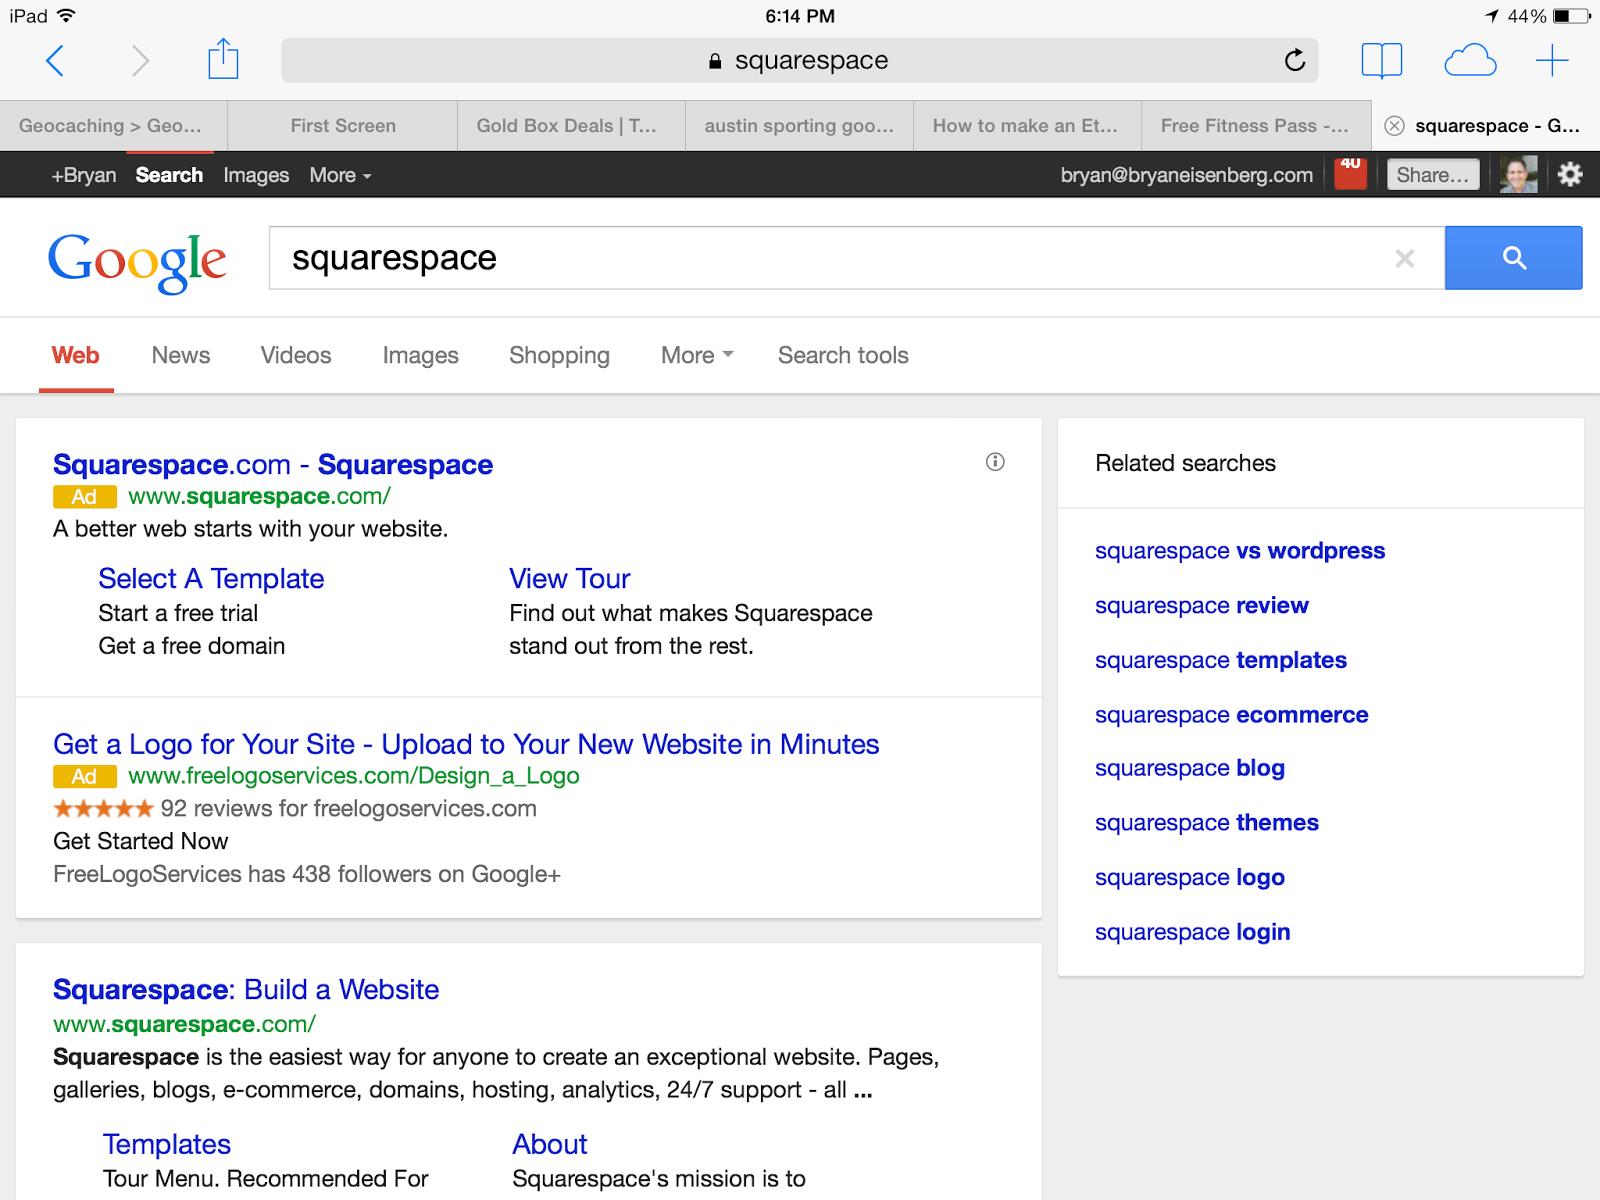 Super Bowl 2014 Advertisers: Did They Win the Search Game?